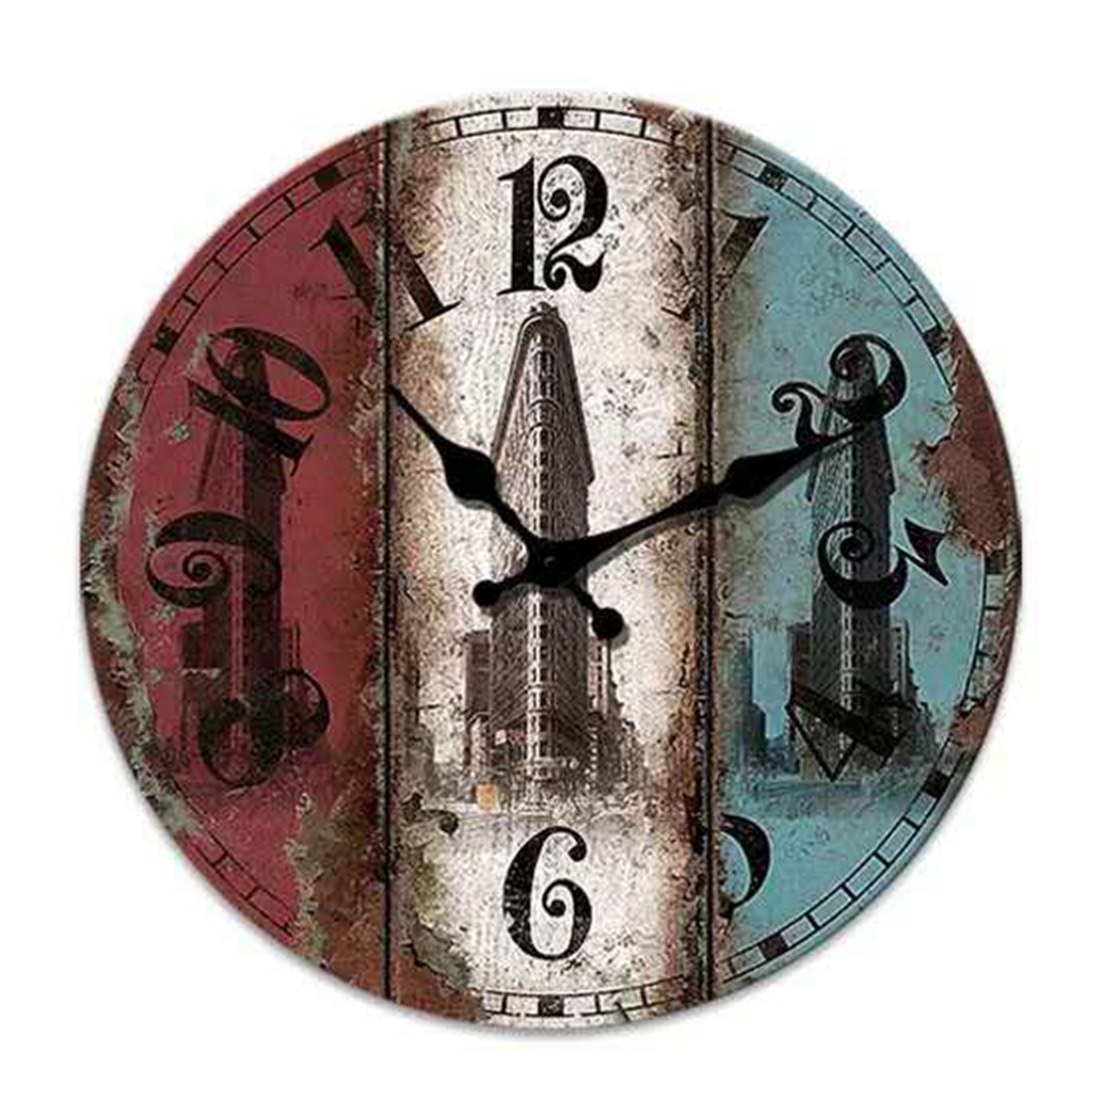 online buy wholesale clock house from china clock house reida archaize hanging clock house decor round wall clock home decoration watch wall christmas gift